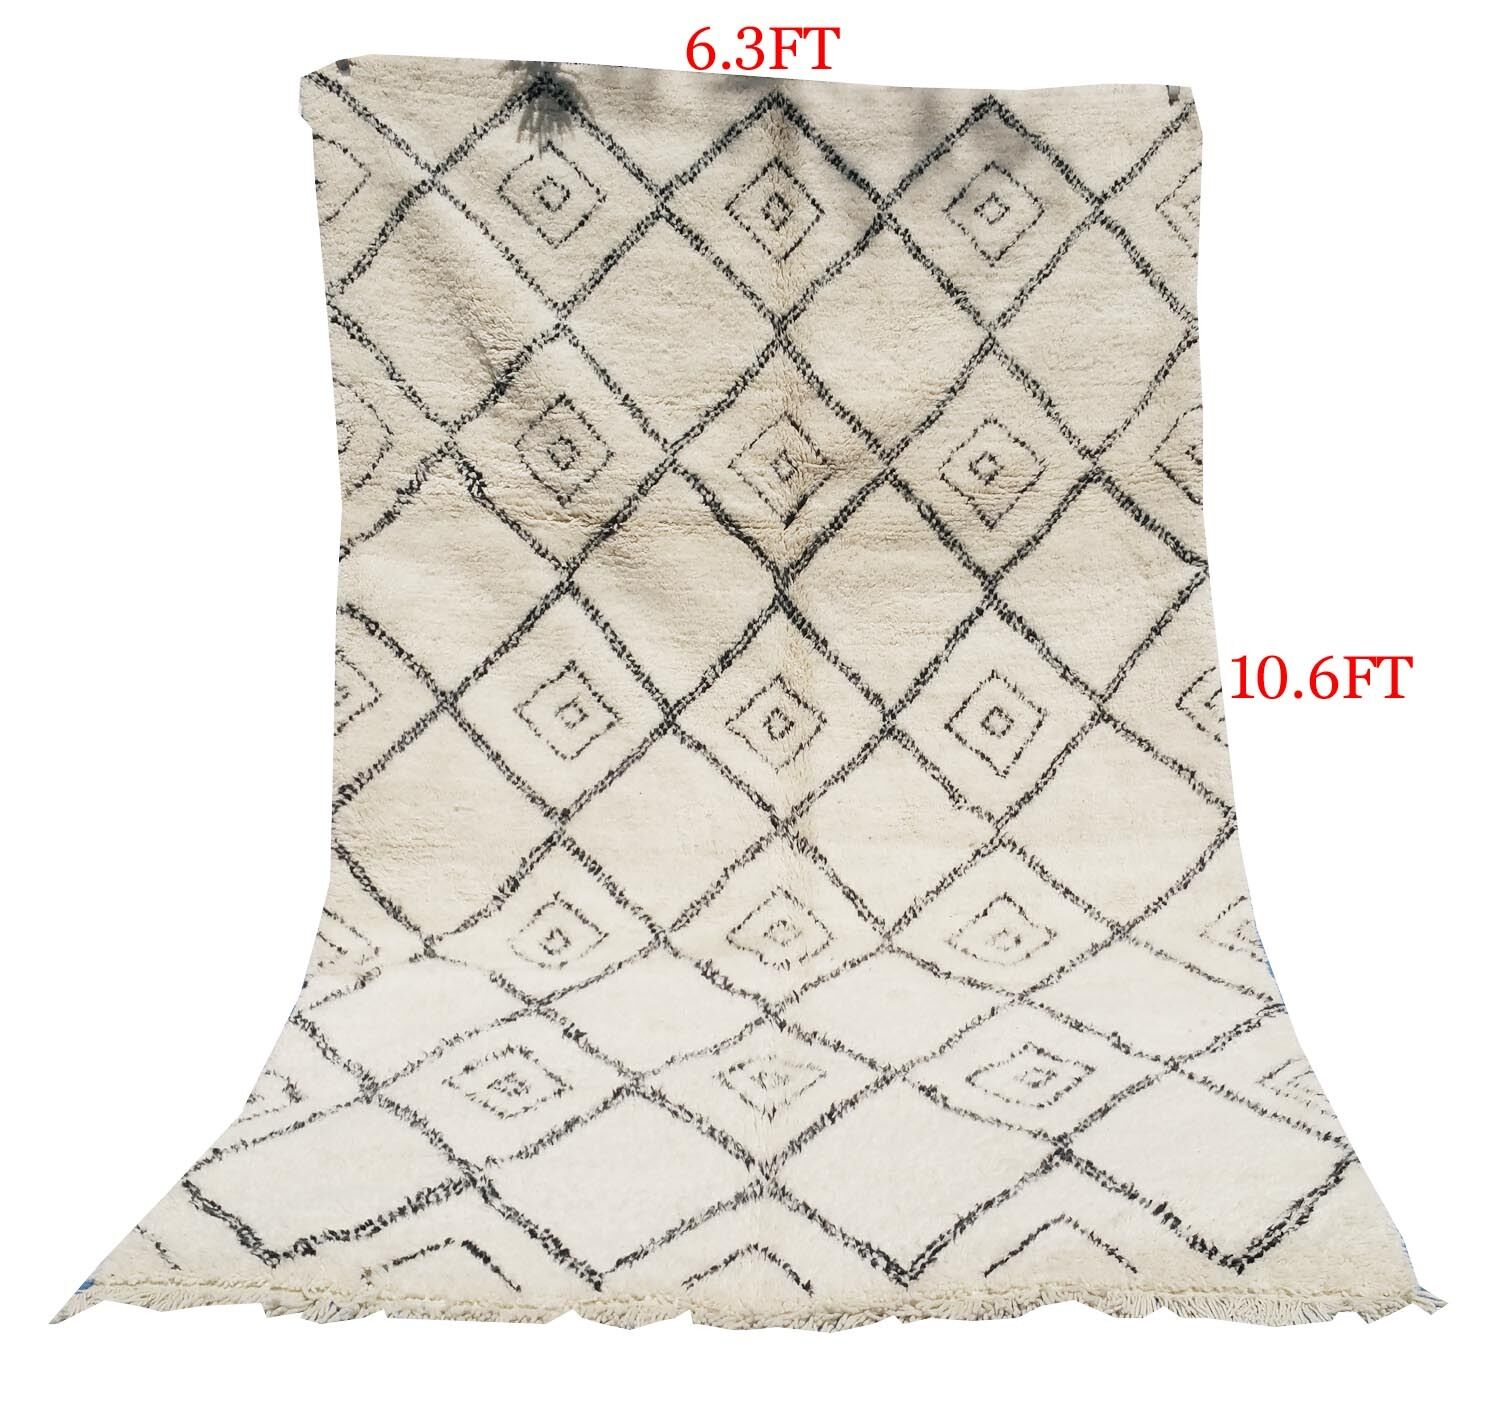 MGoldccan authentic Beni ourain knotted carpet Rug 100% Handmade 6.3ft 6.3ft 6.3ft x10.6ft e3a6f1